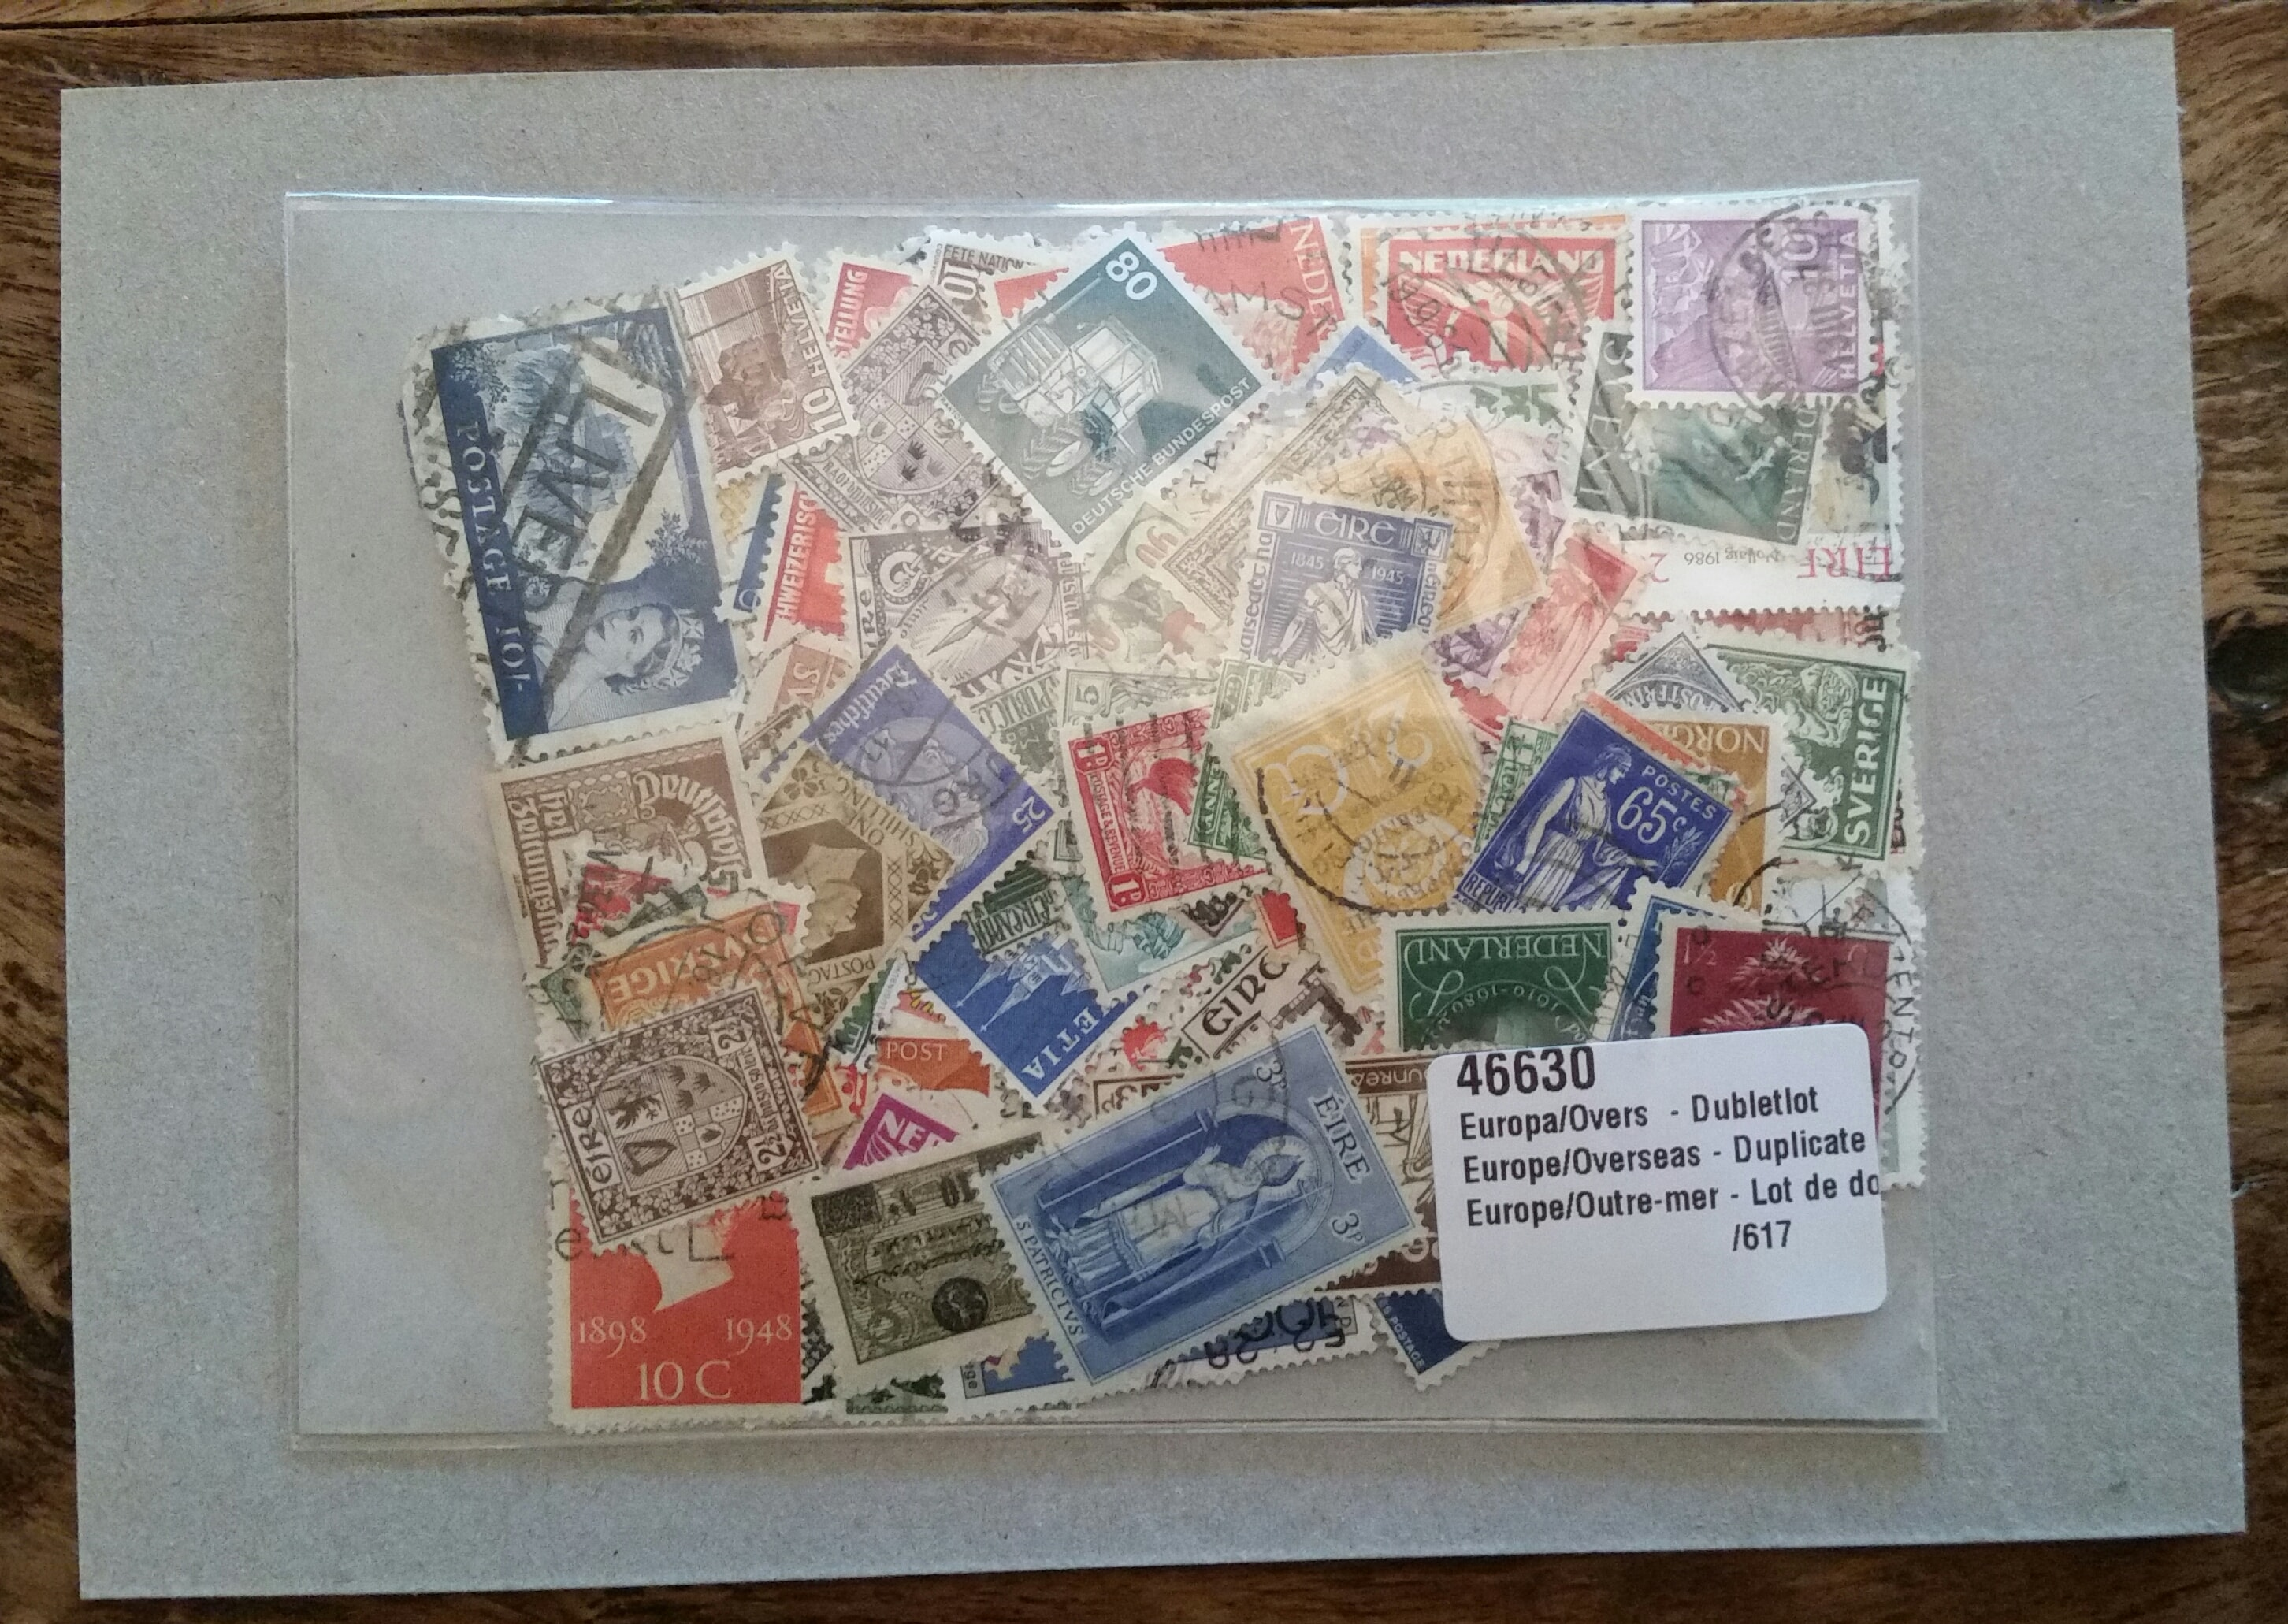 Nordfrim stamp lot for review